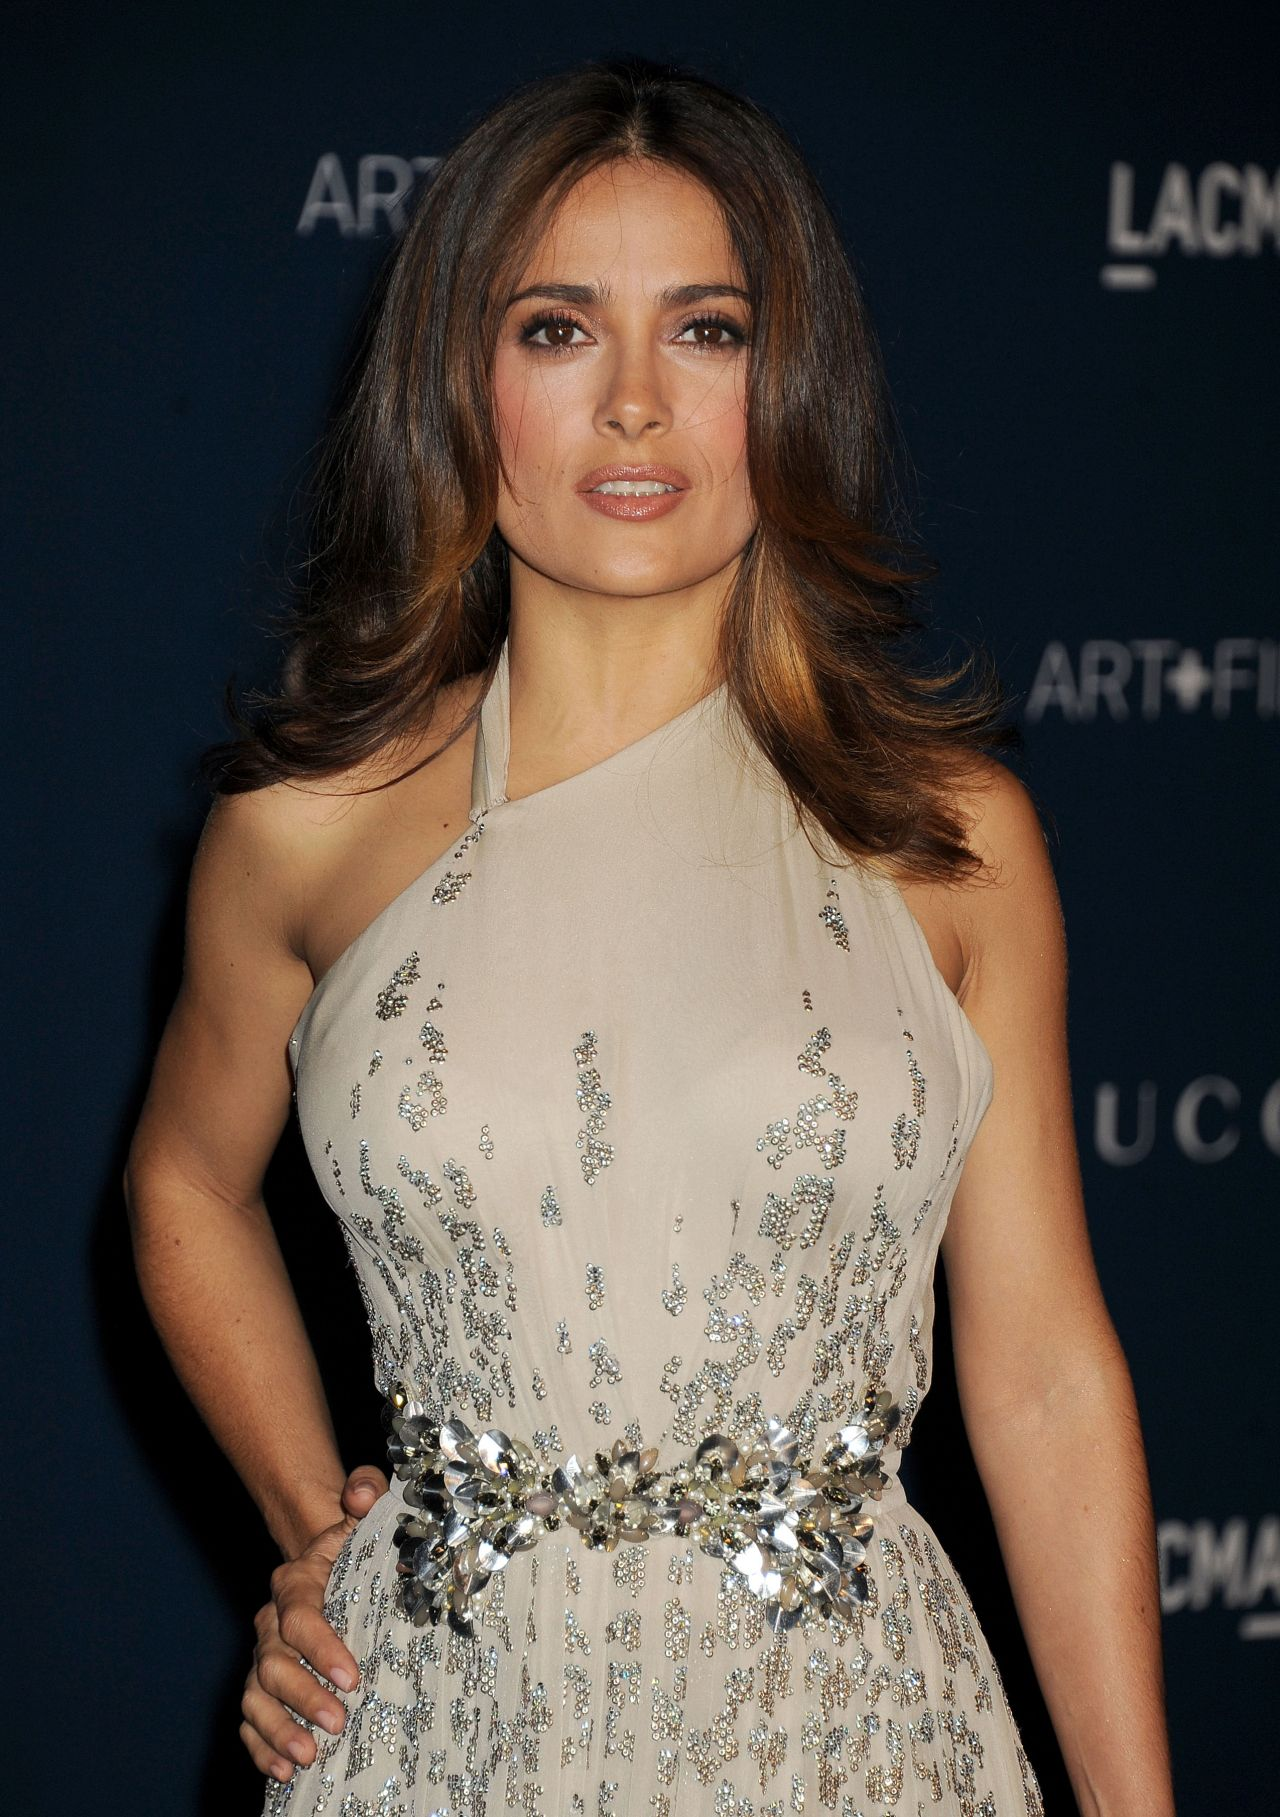 Salma Hayek at 2013 LACMA Art and Film Gala in Los Angeles